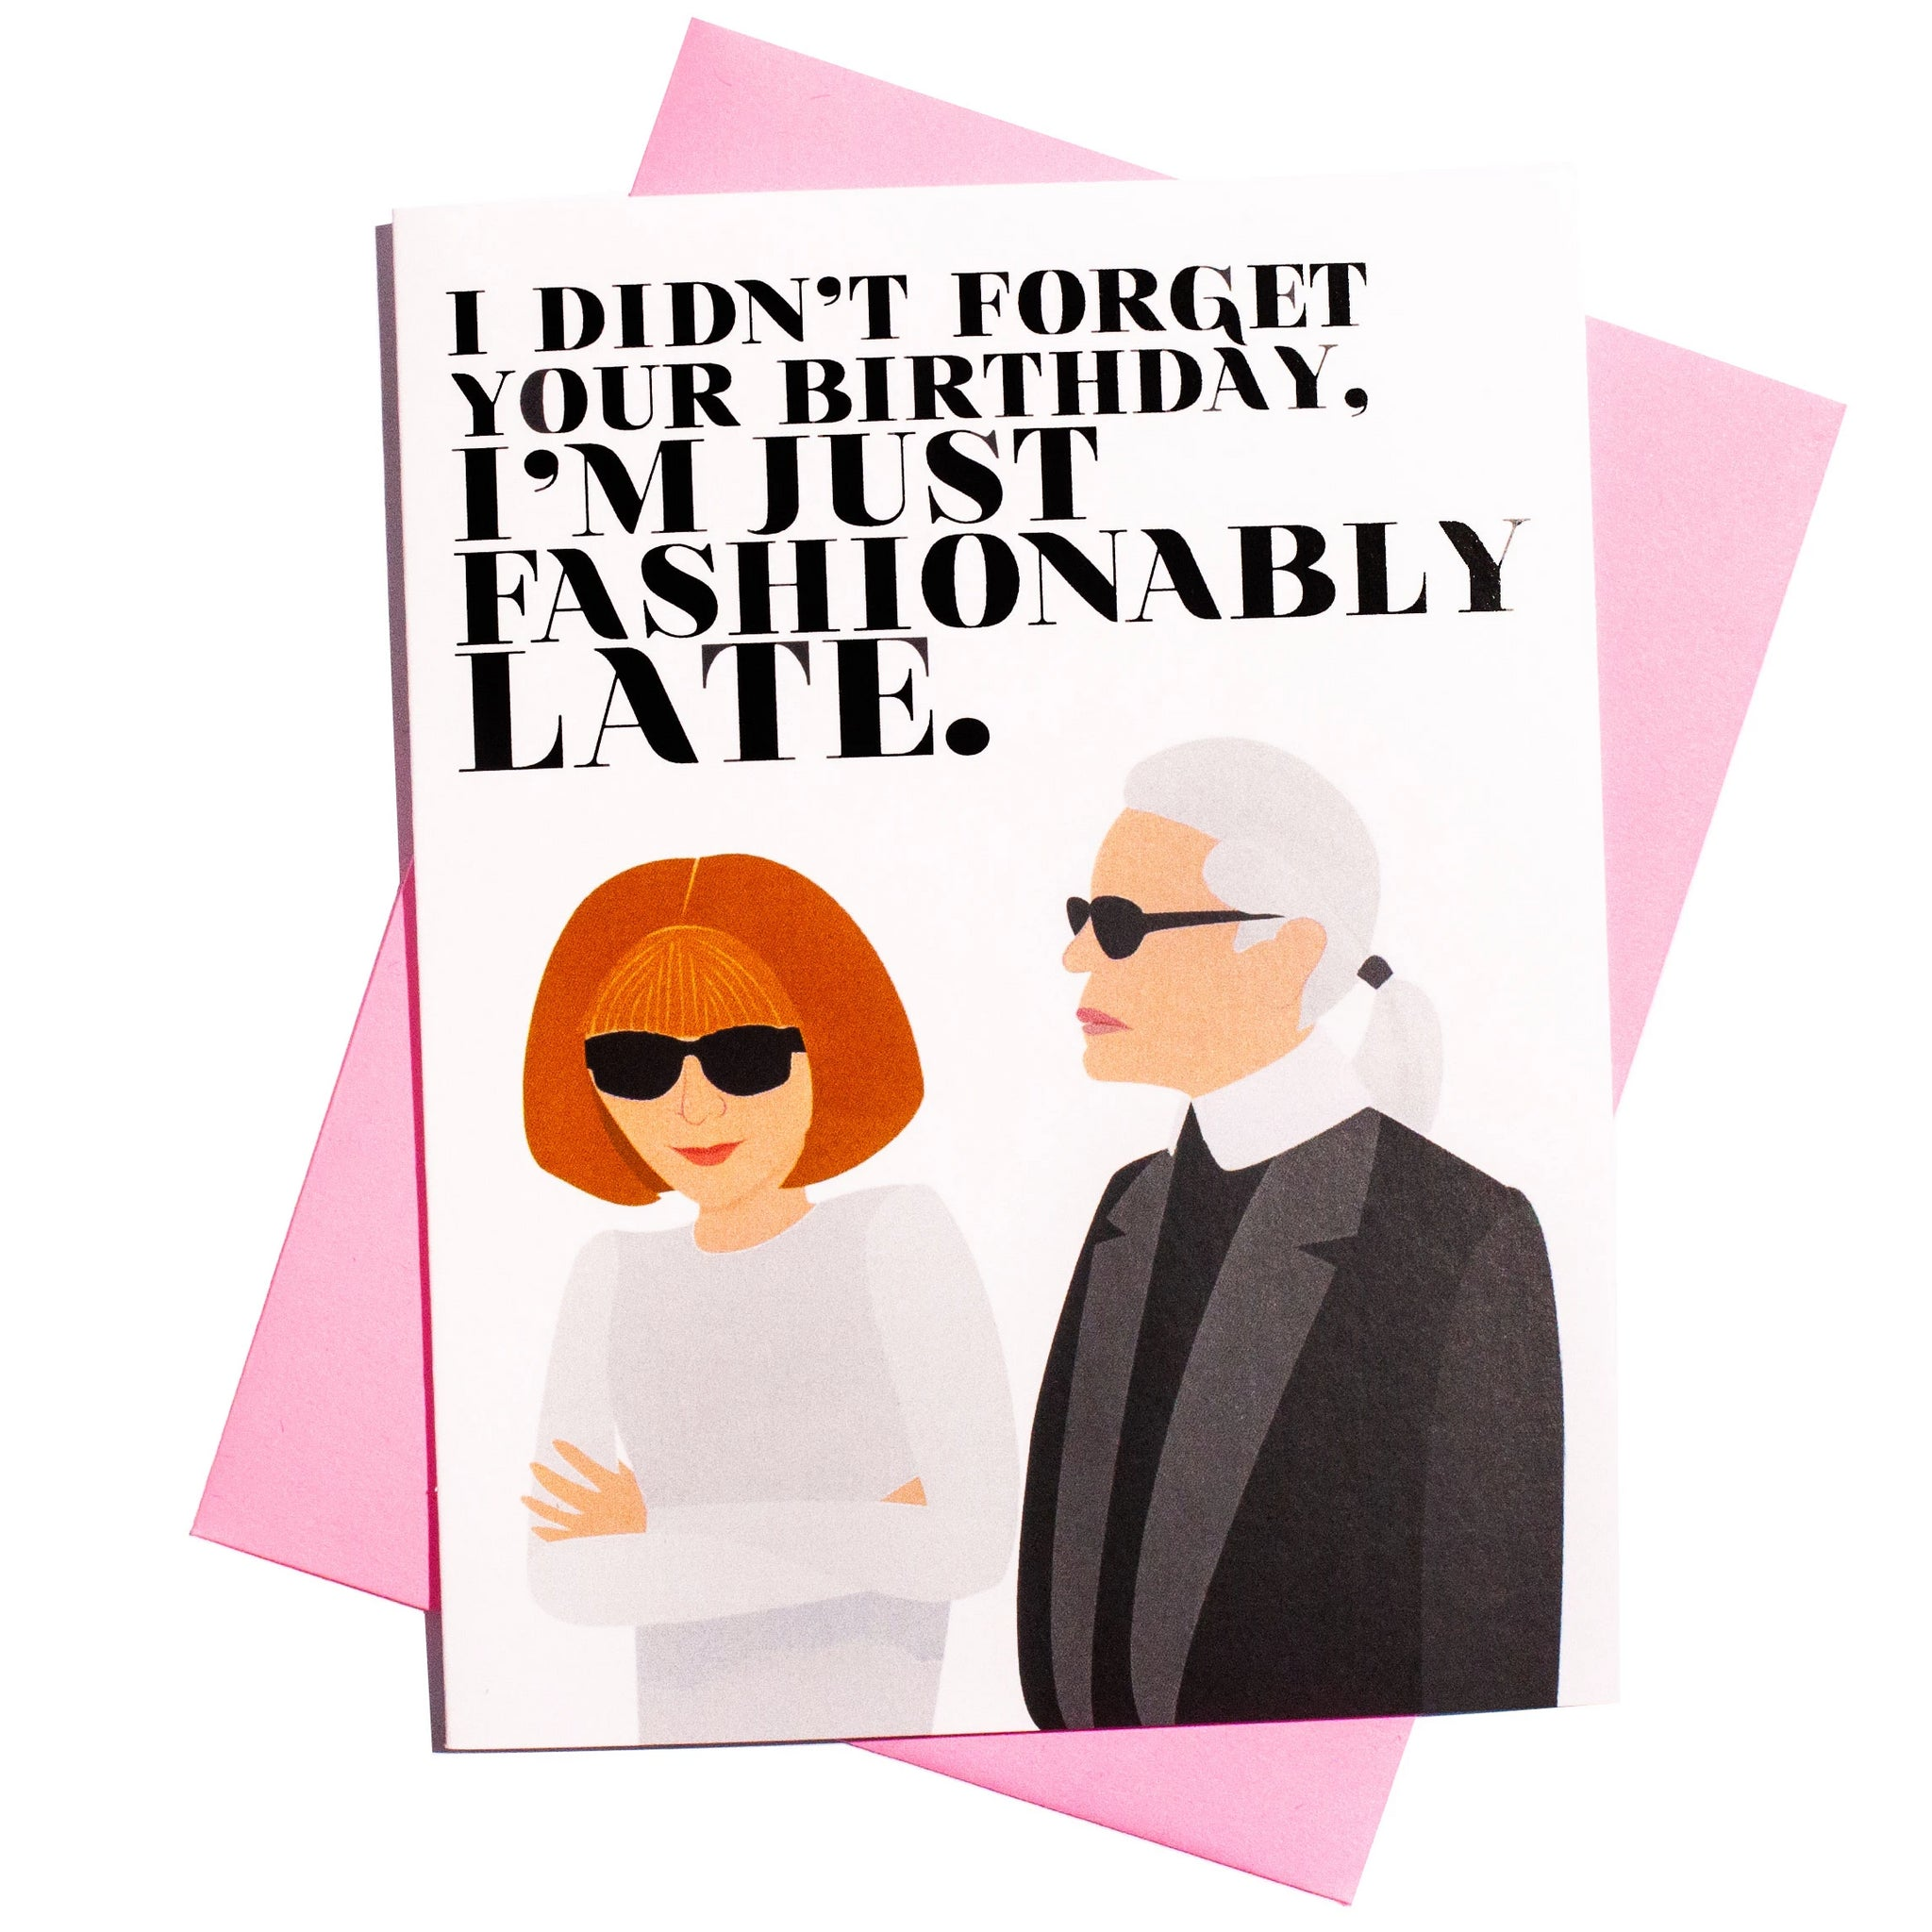 Fashionably Late Belated Birthday Card